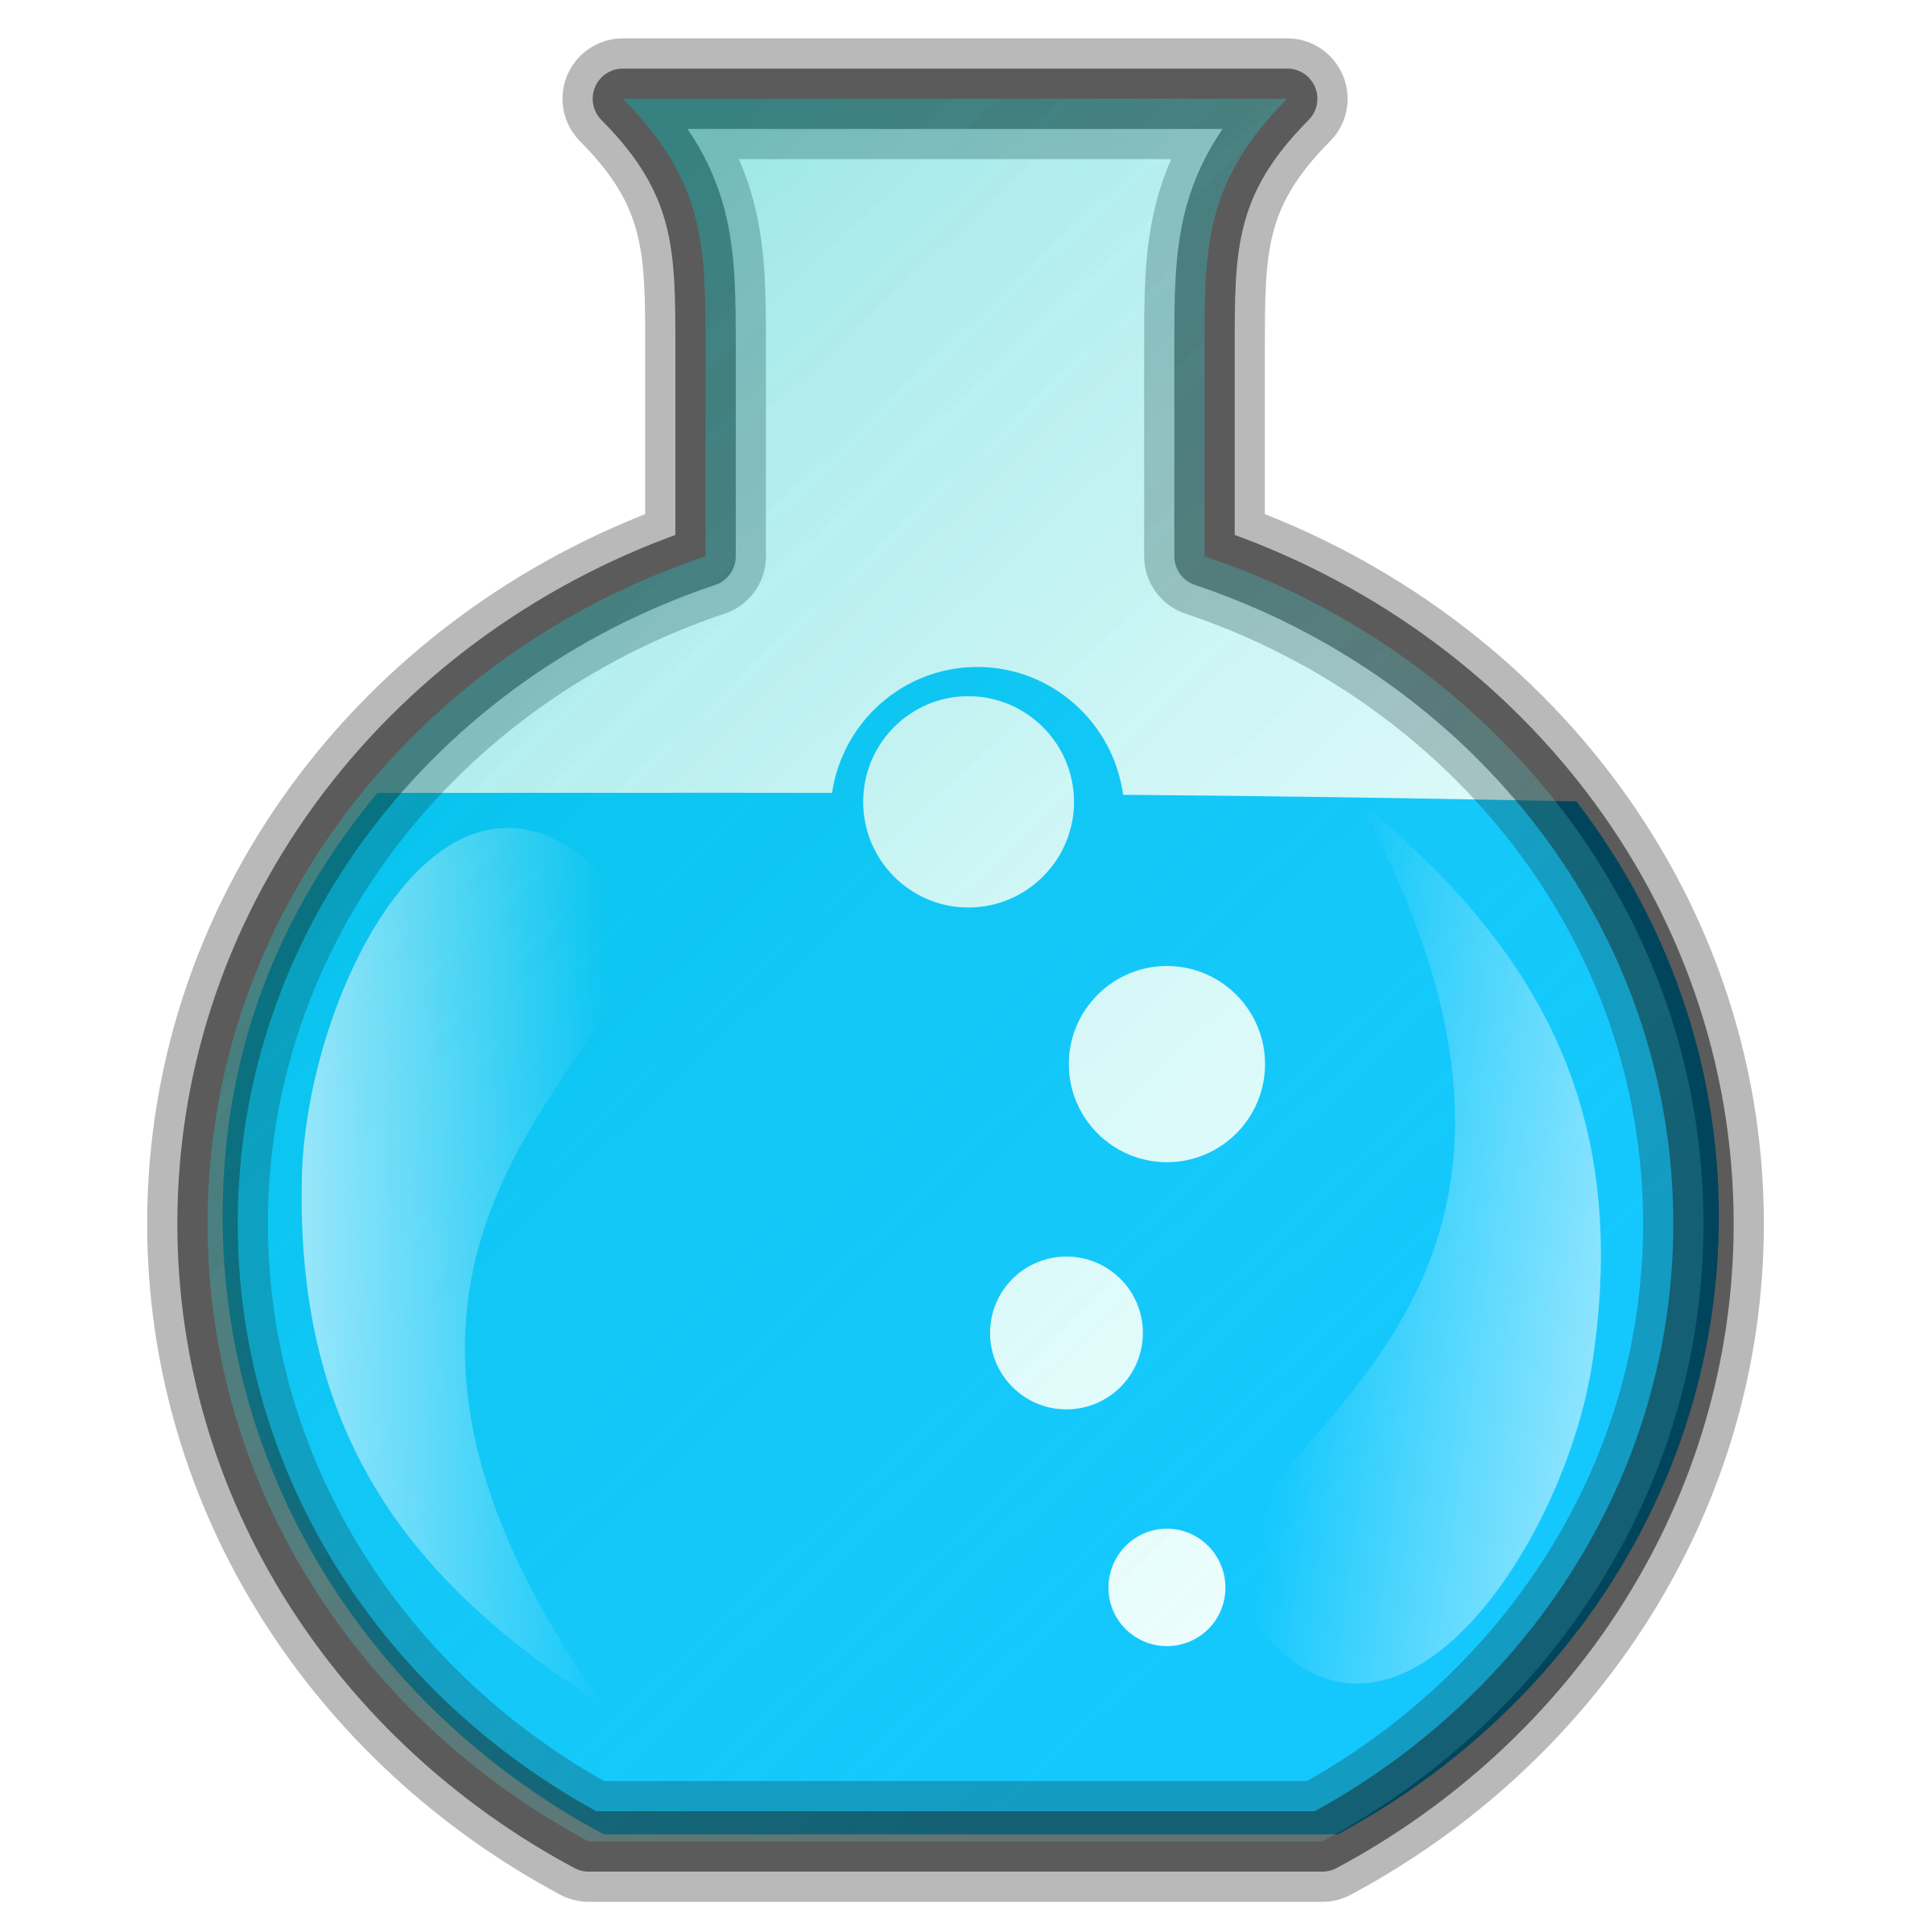 Scientist clipart icon #4